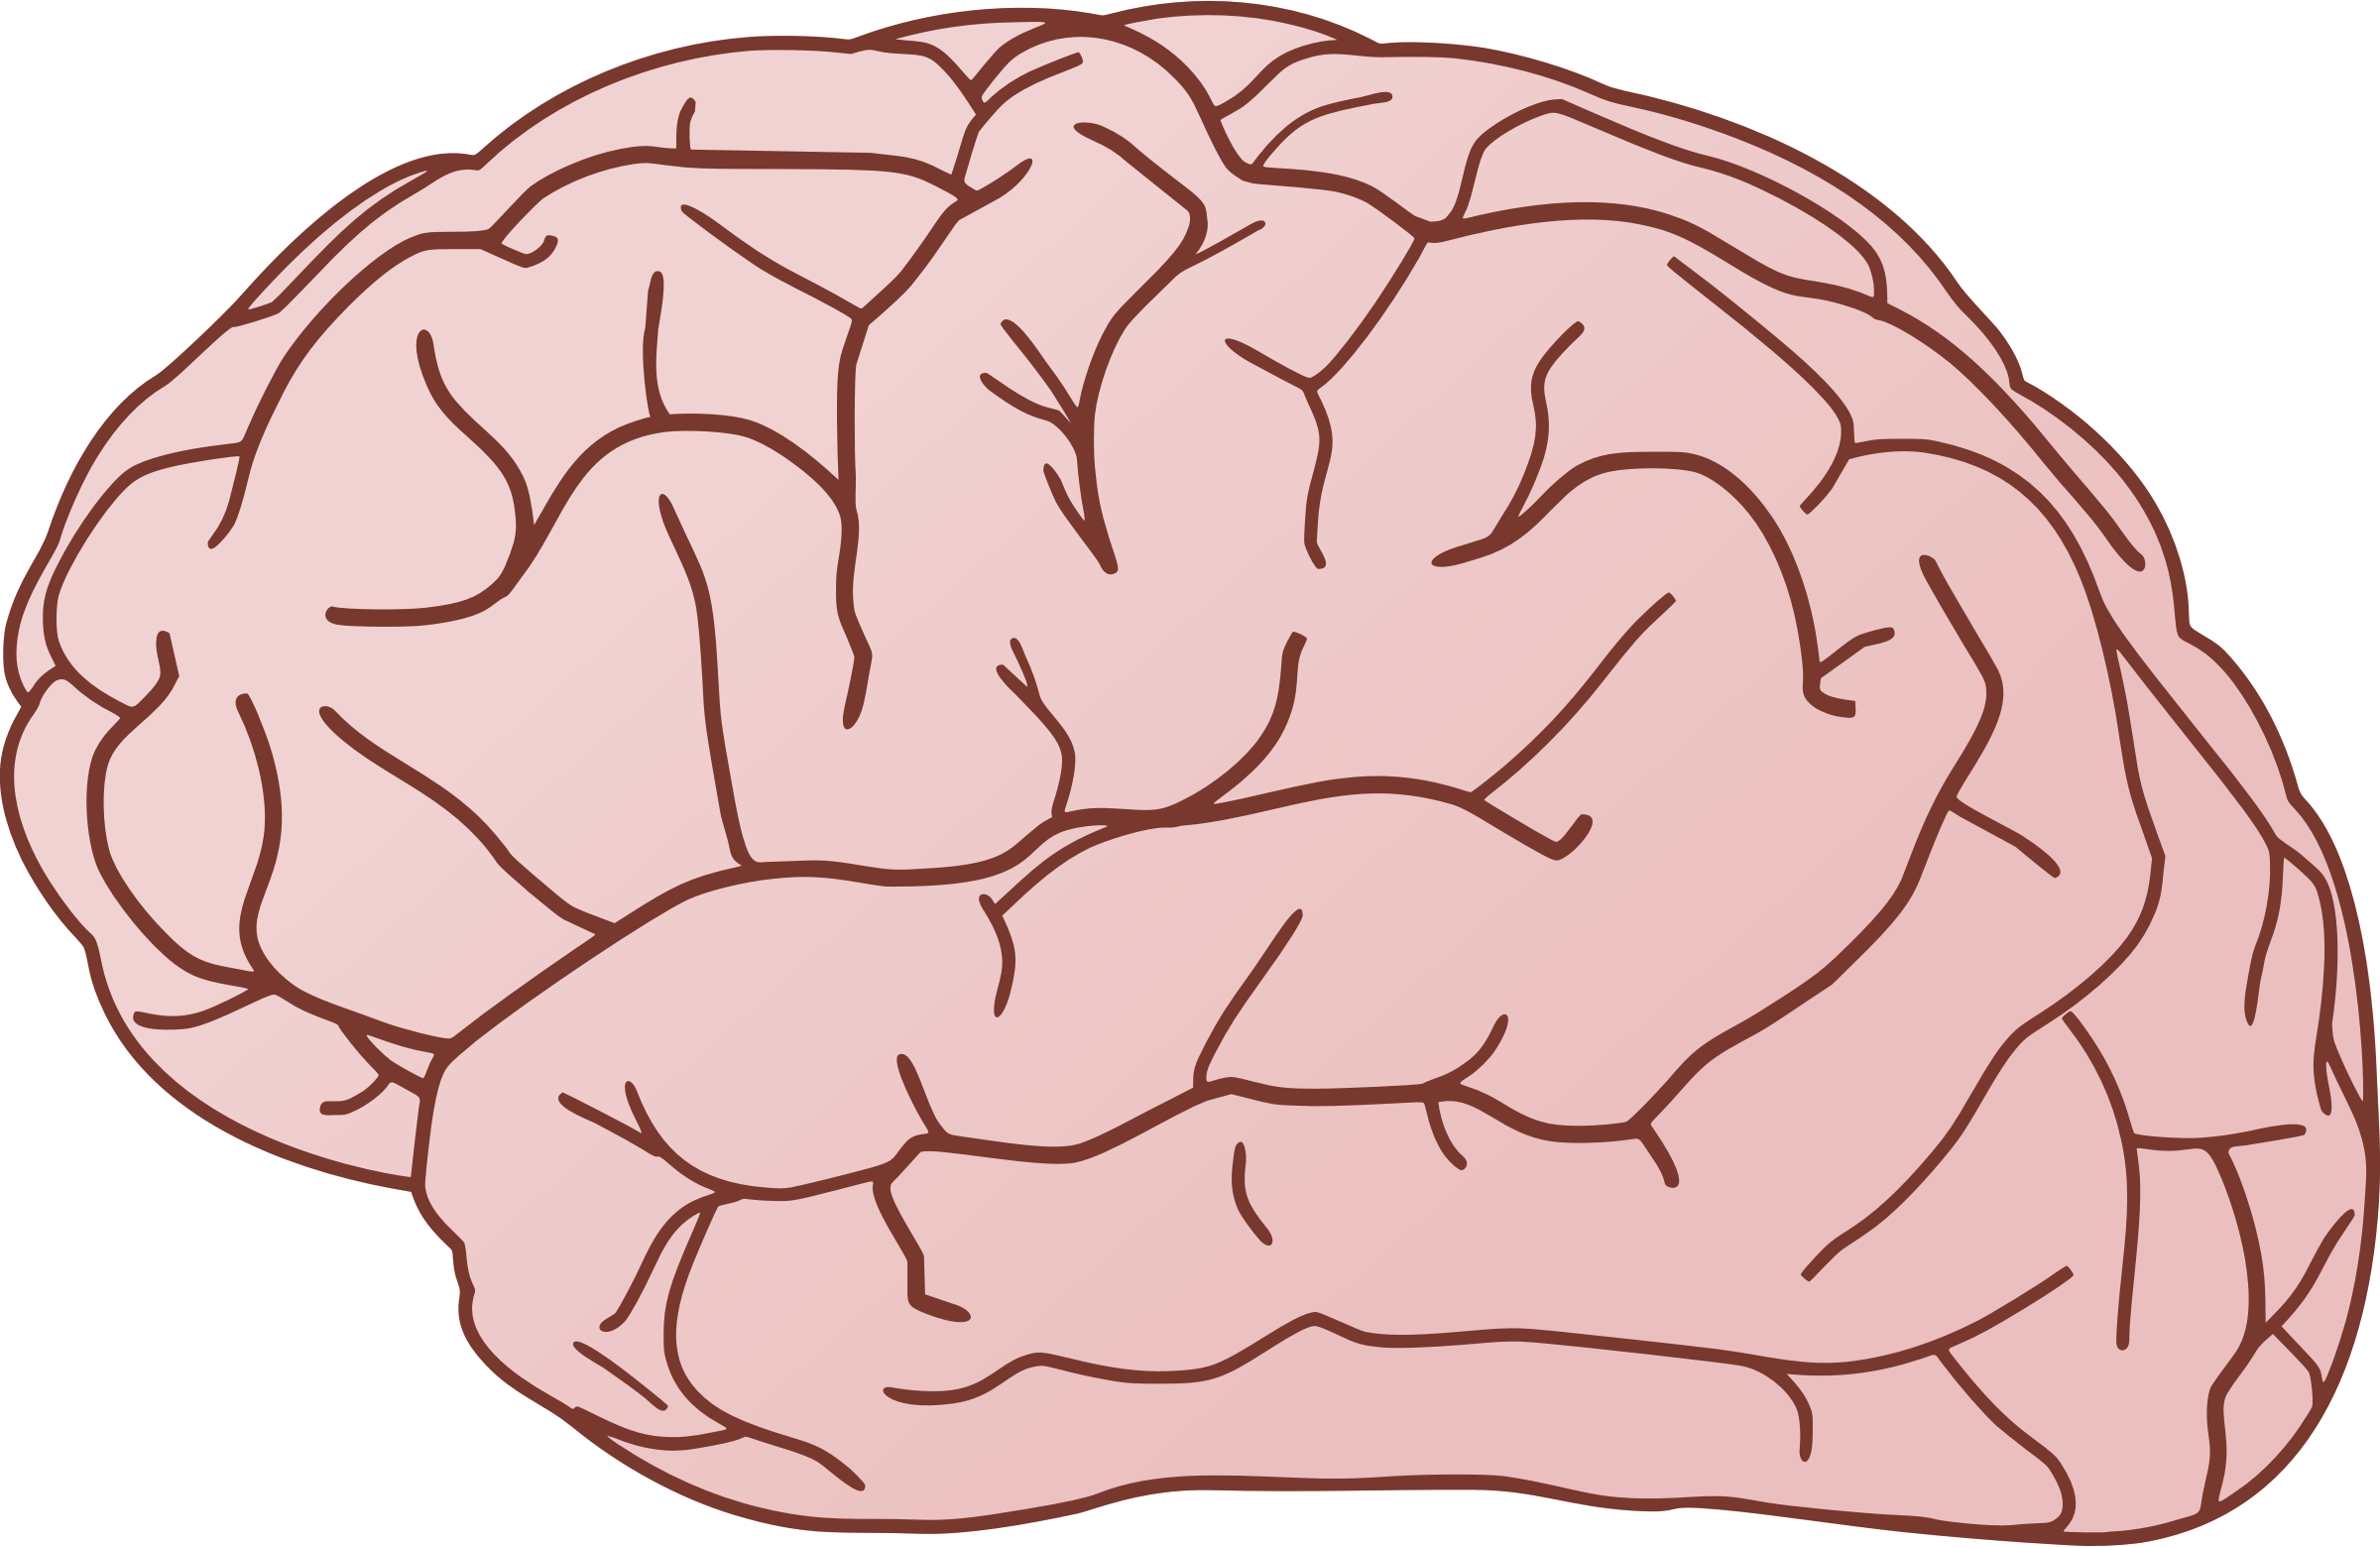 Clipart Brain exterior side view.